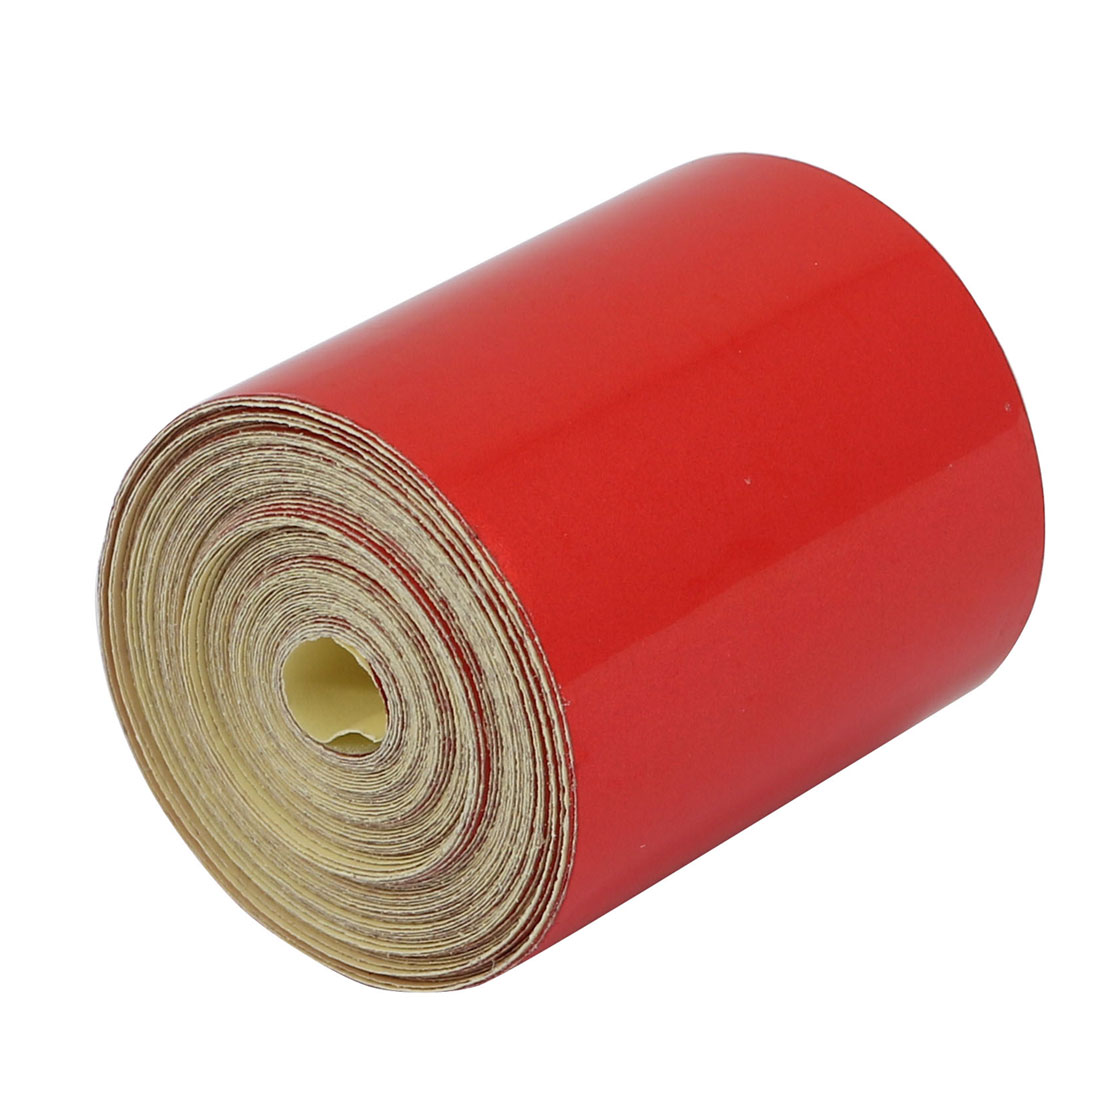 5cm Width 6M Length Single Sided Adhesive Reflective Warning Tape Red